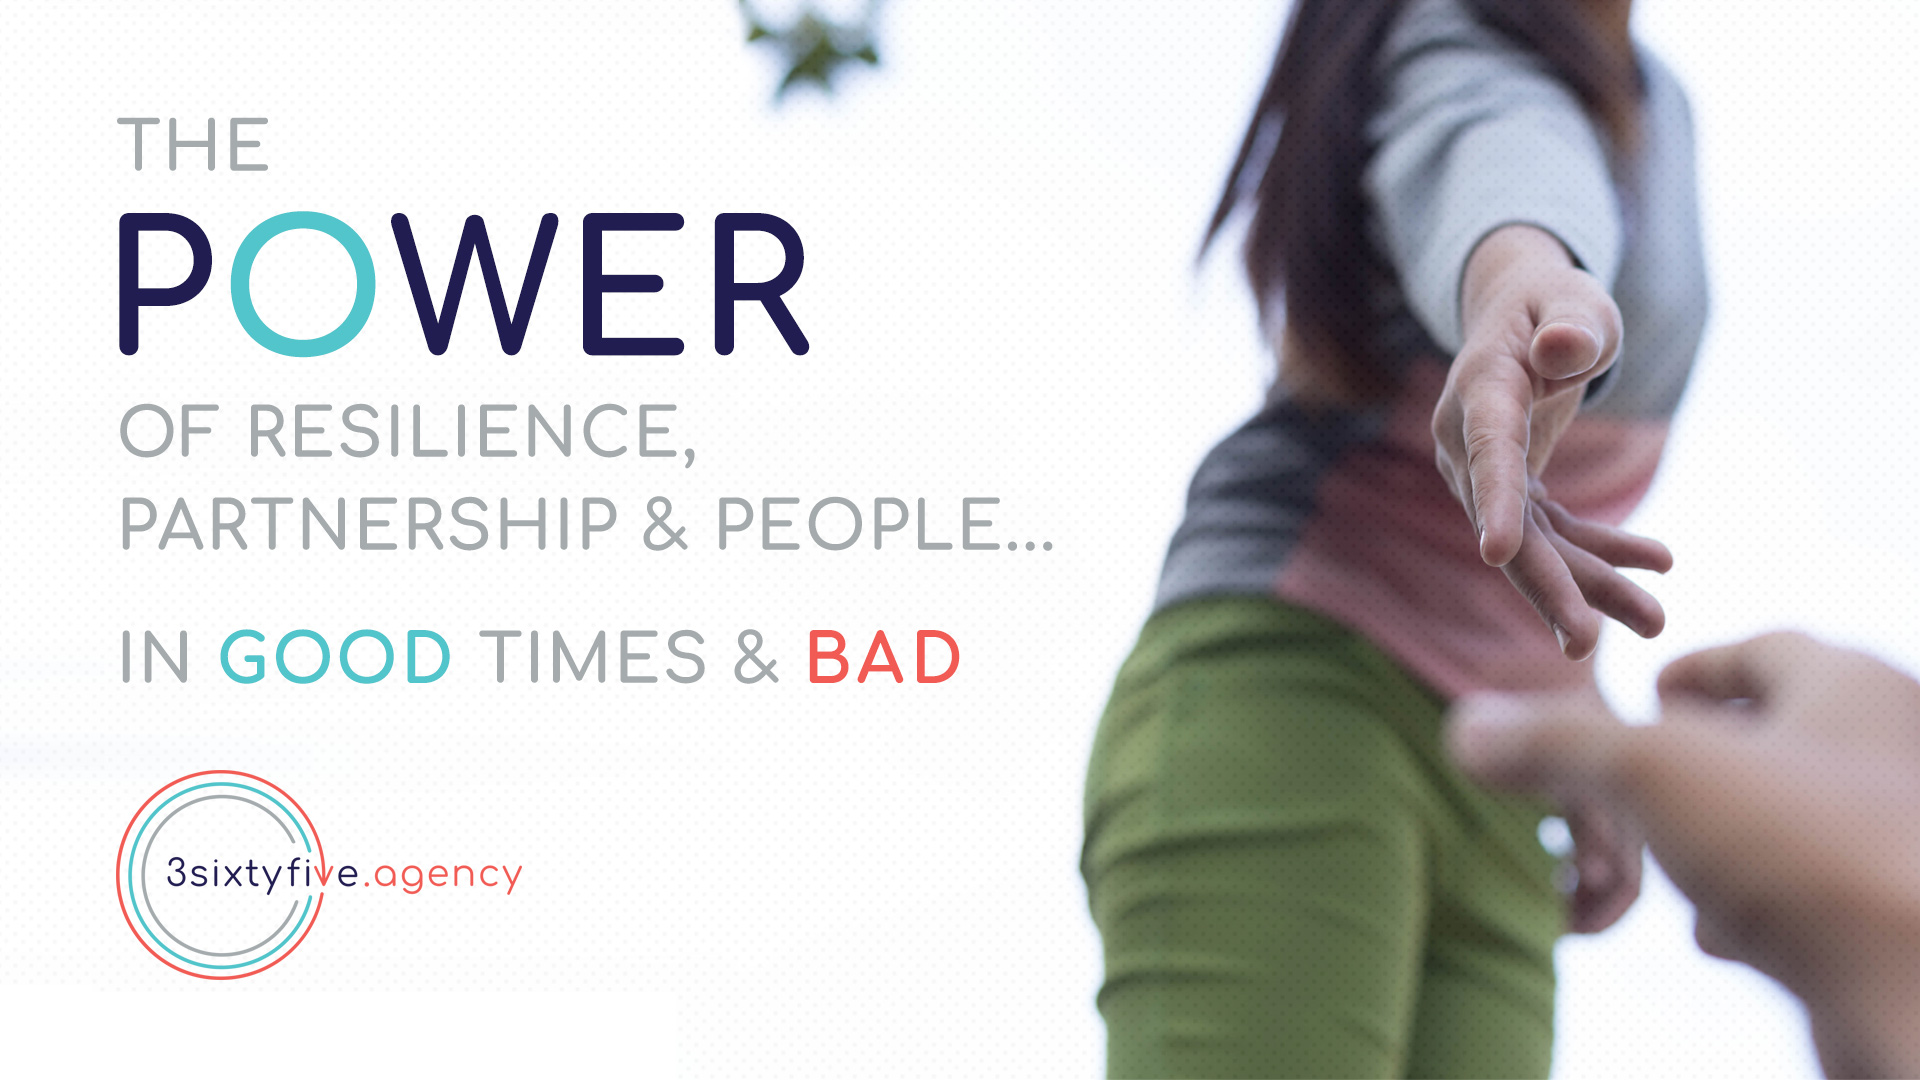 The power of resilience, partnerships and people…in good times and bad.